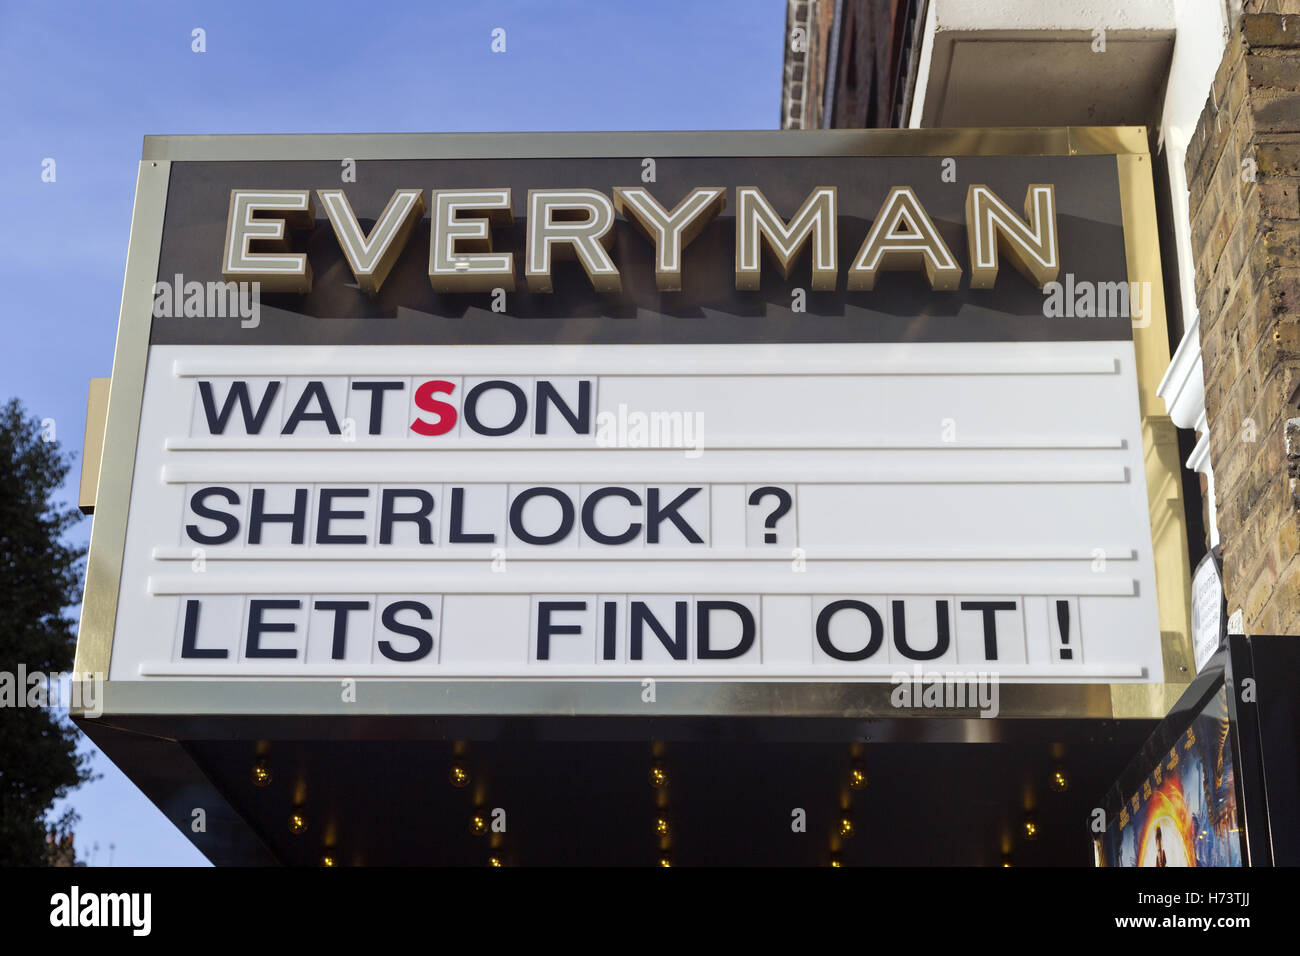 London, UK. 2nd Nov. 2016. Catchy amusing Sherlock sign 'WATSON SHERLOCK? LETS FIND OUT',  newly refurbished - Stock Image